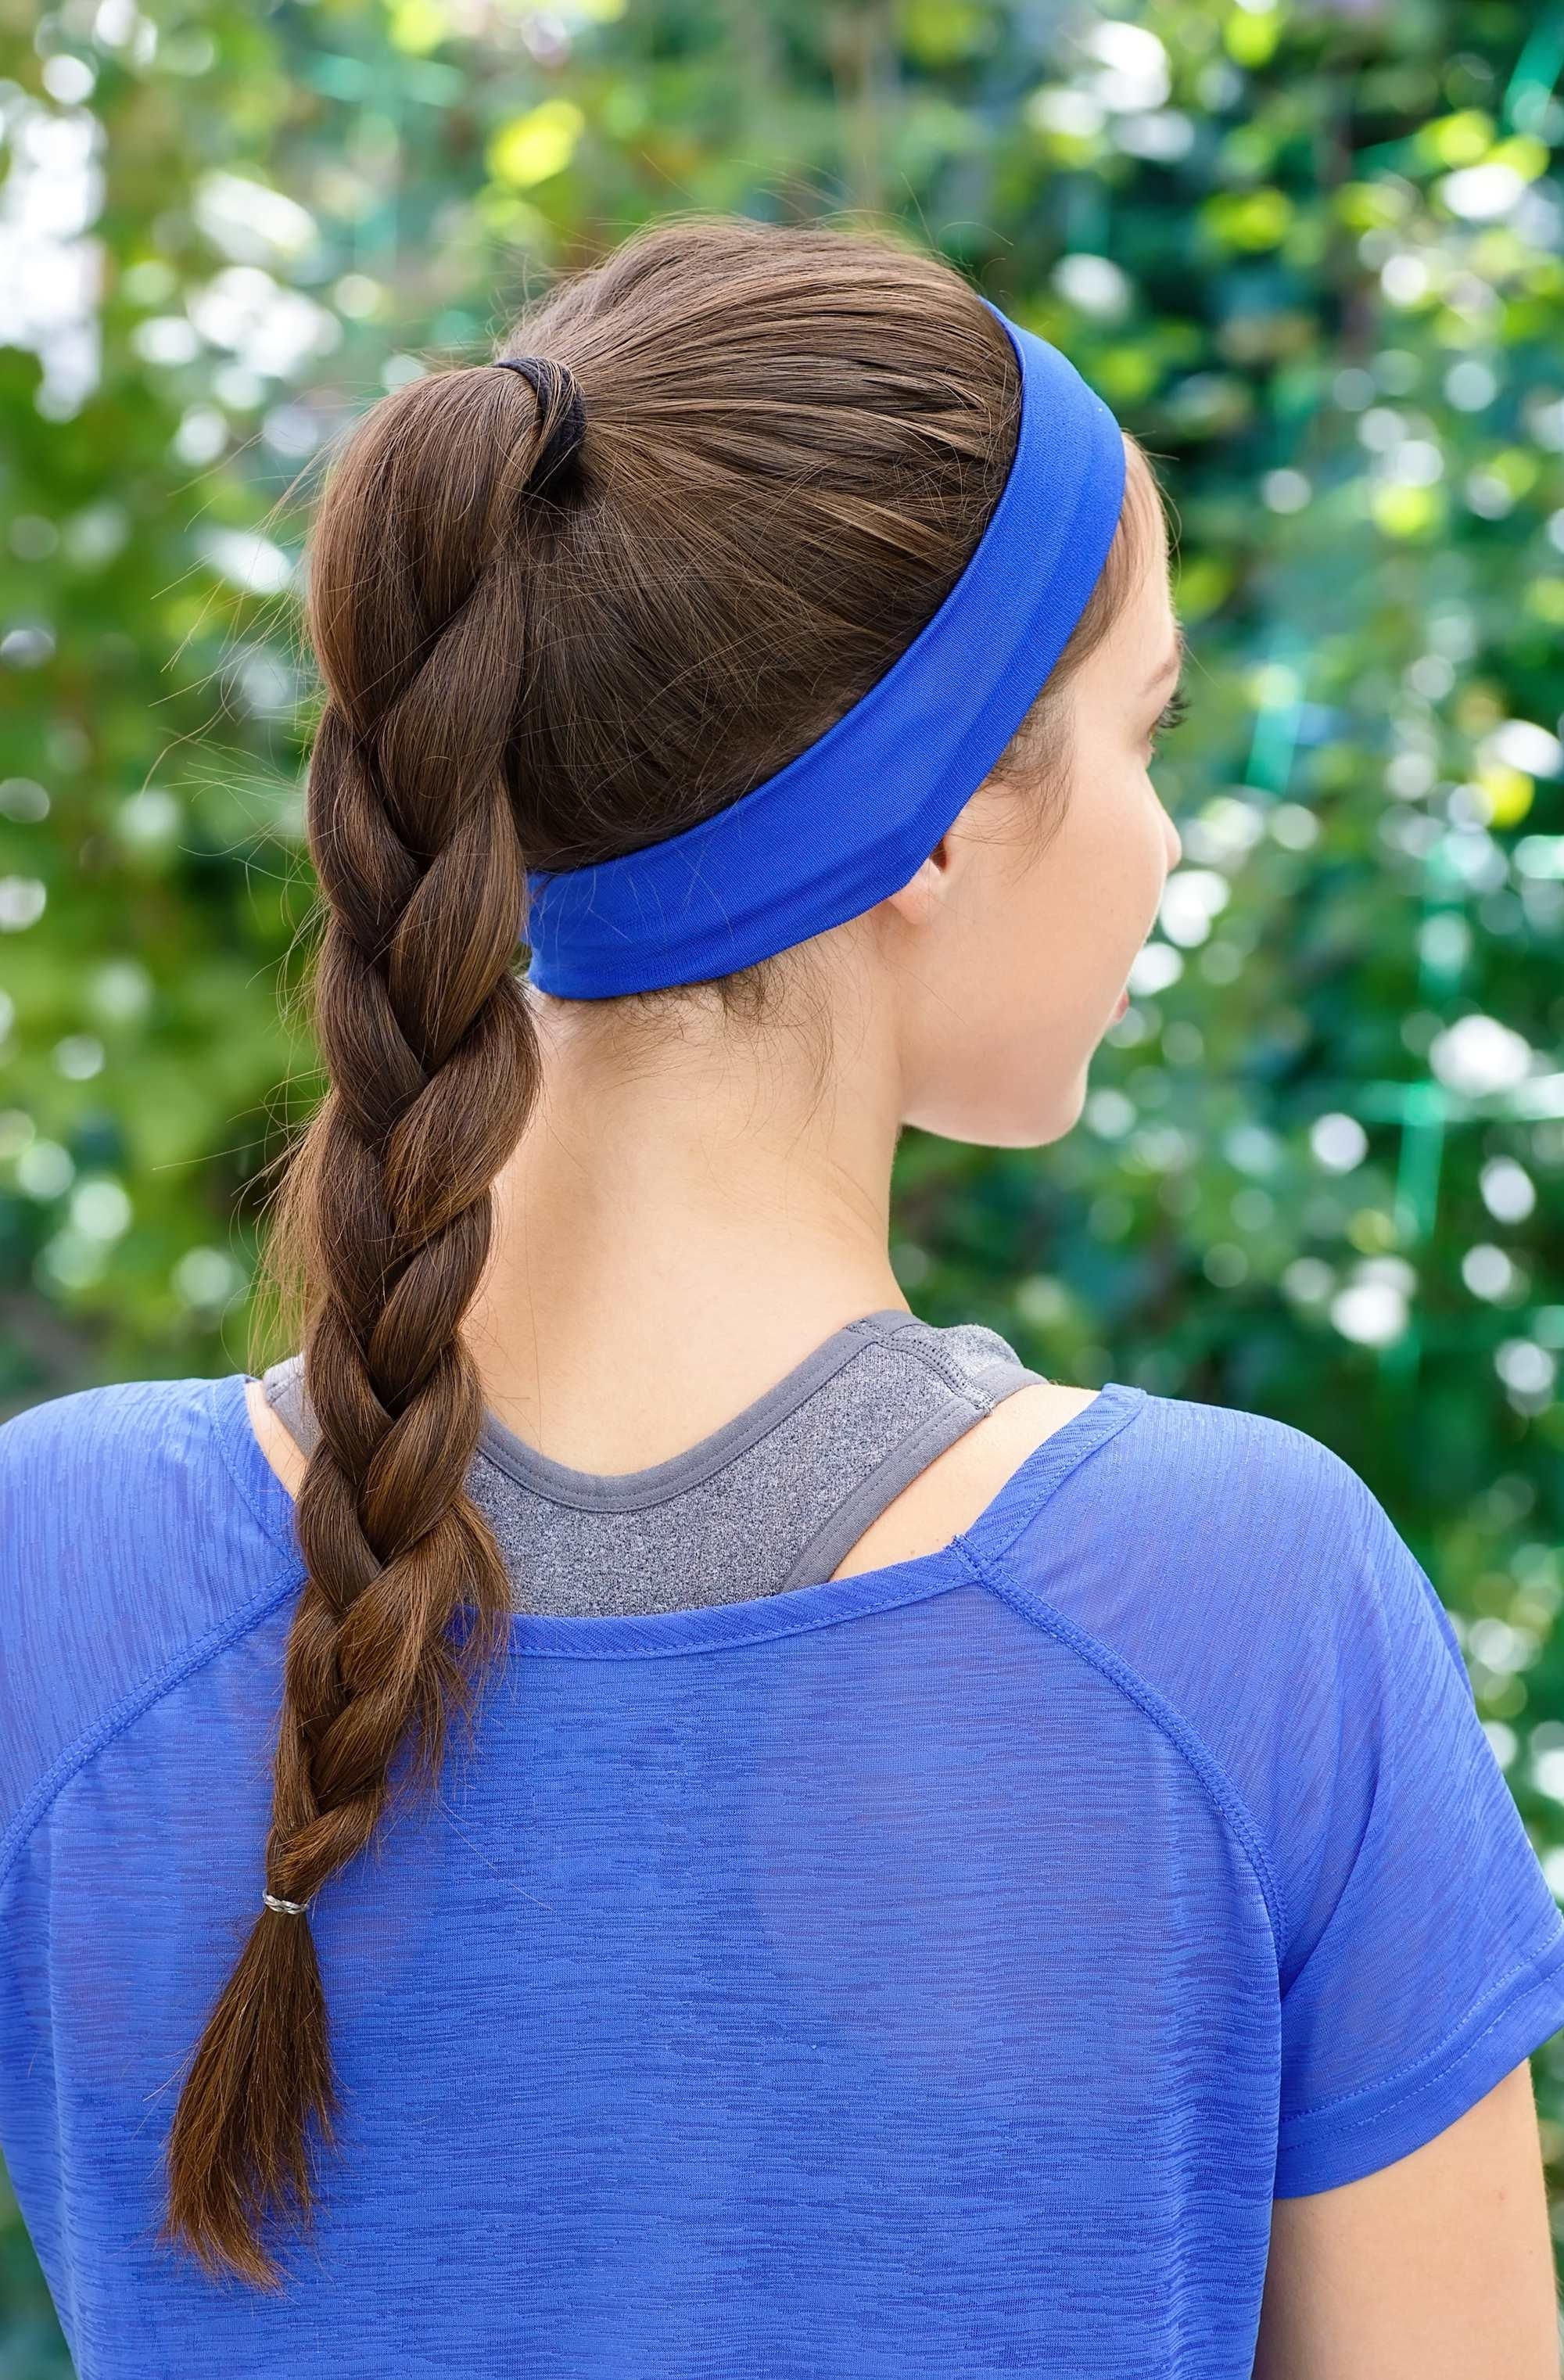 Most Recent Ponytail Braids With Quirky Hair Accessory For Braided Ponytail: How To Create This Easy Hairstyle For The Gym (View 7 of 15)